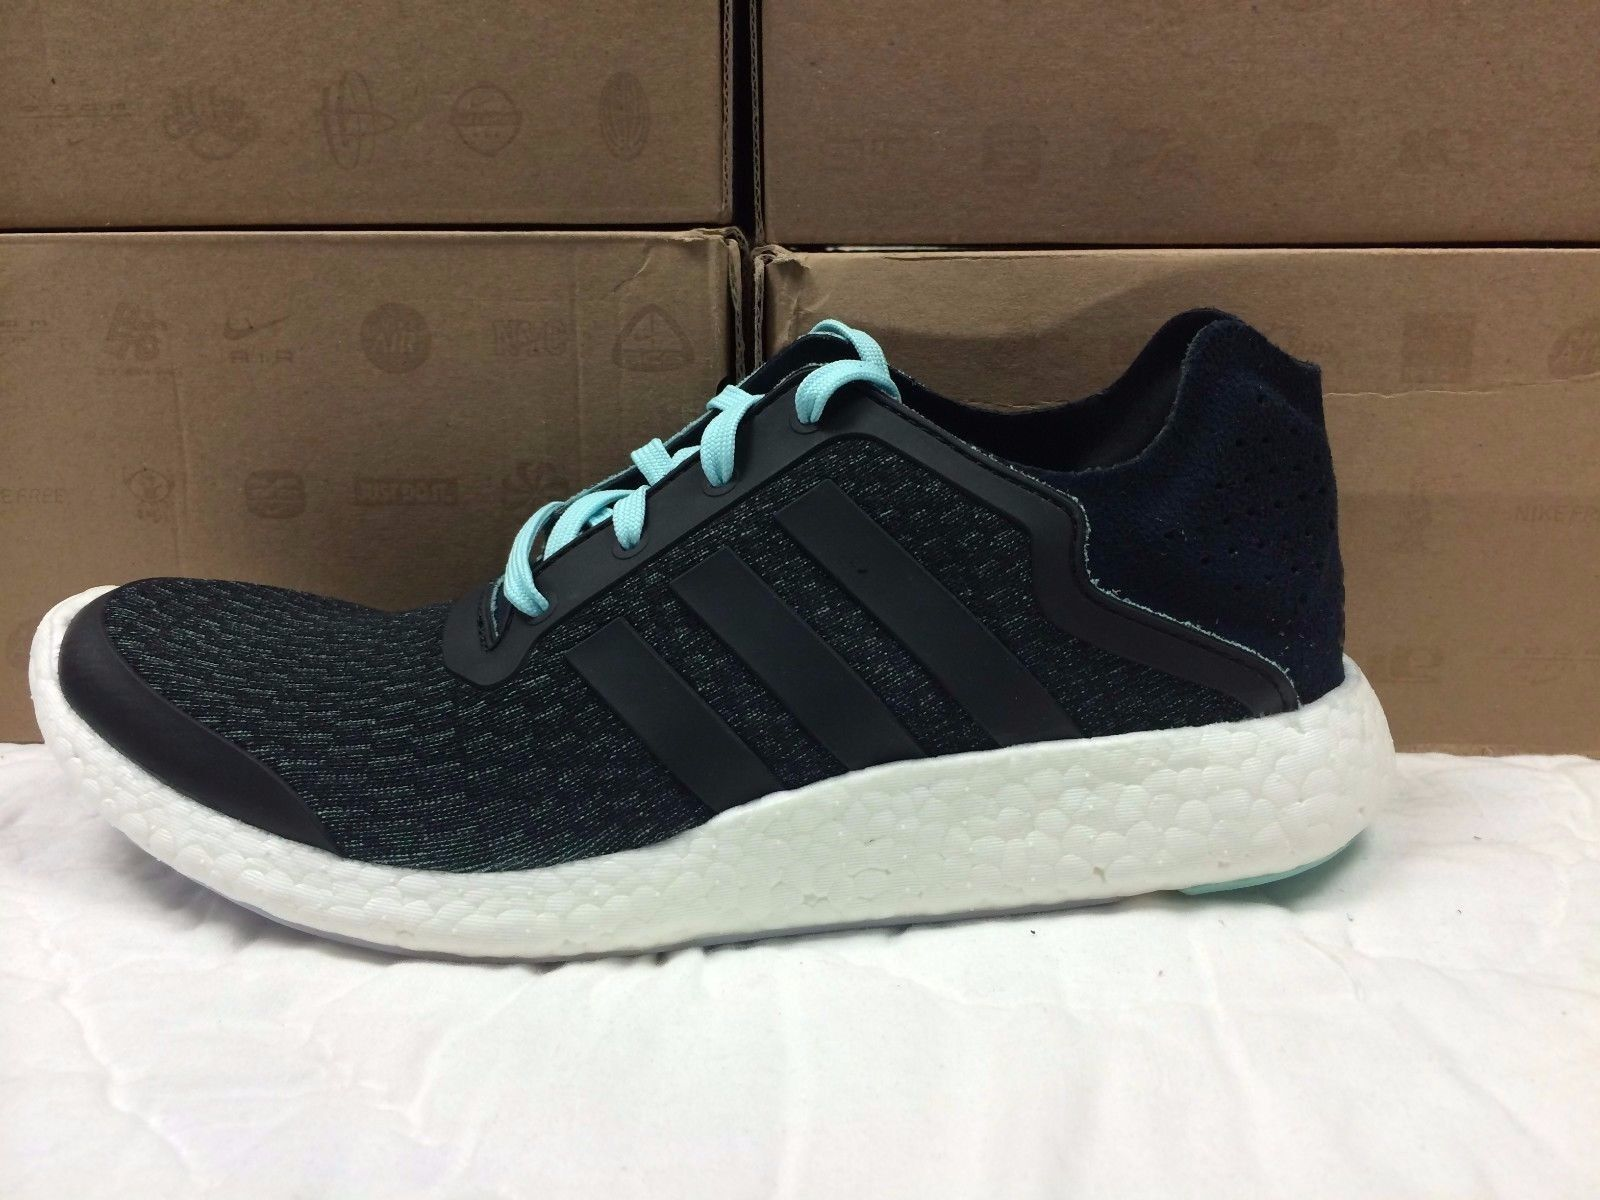 NEW Donna ADIDAS PUREBOOST REVEAL W SNEAKERS-RUNNING-WALKING-SIZE 9.5